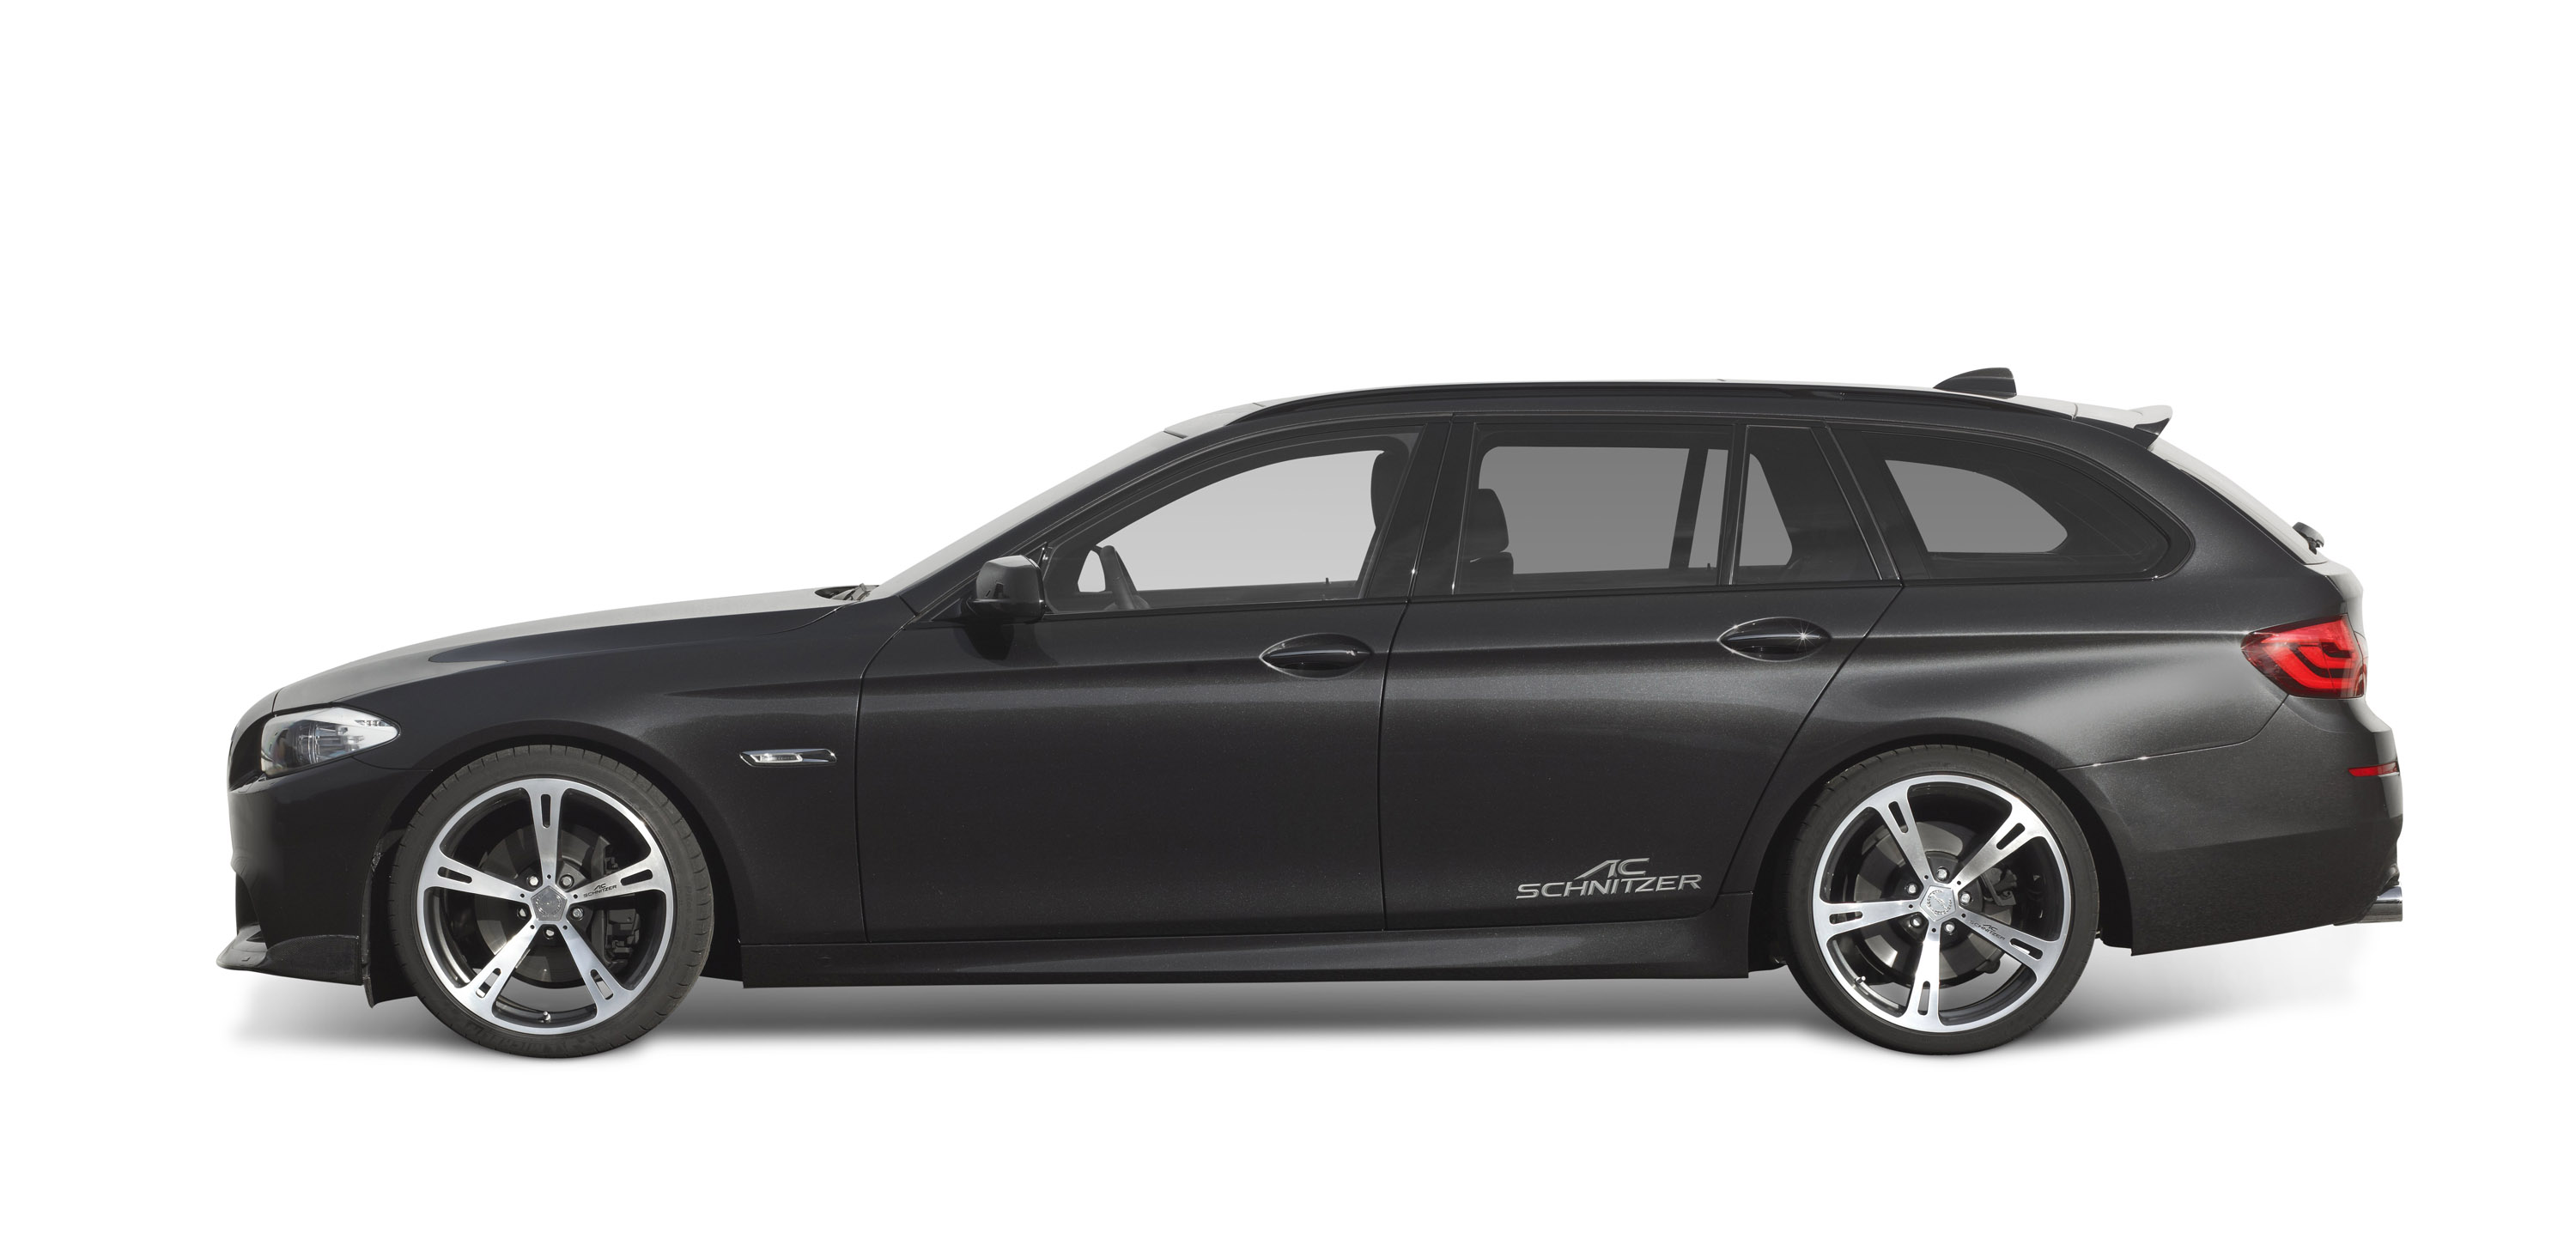 ac schnitzer refines the new bmw 5 series touring. Black Bedroom Furniture Sets. Home Design Ideas